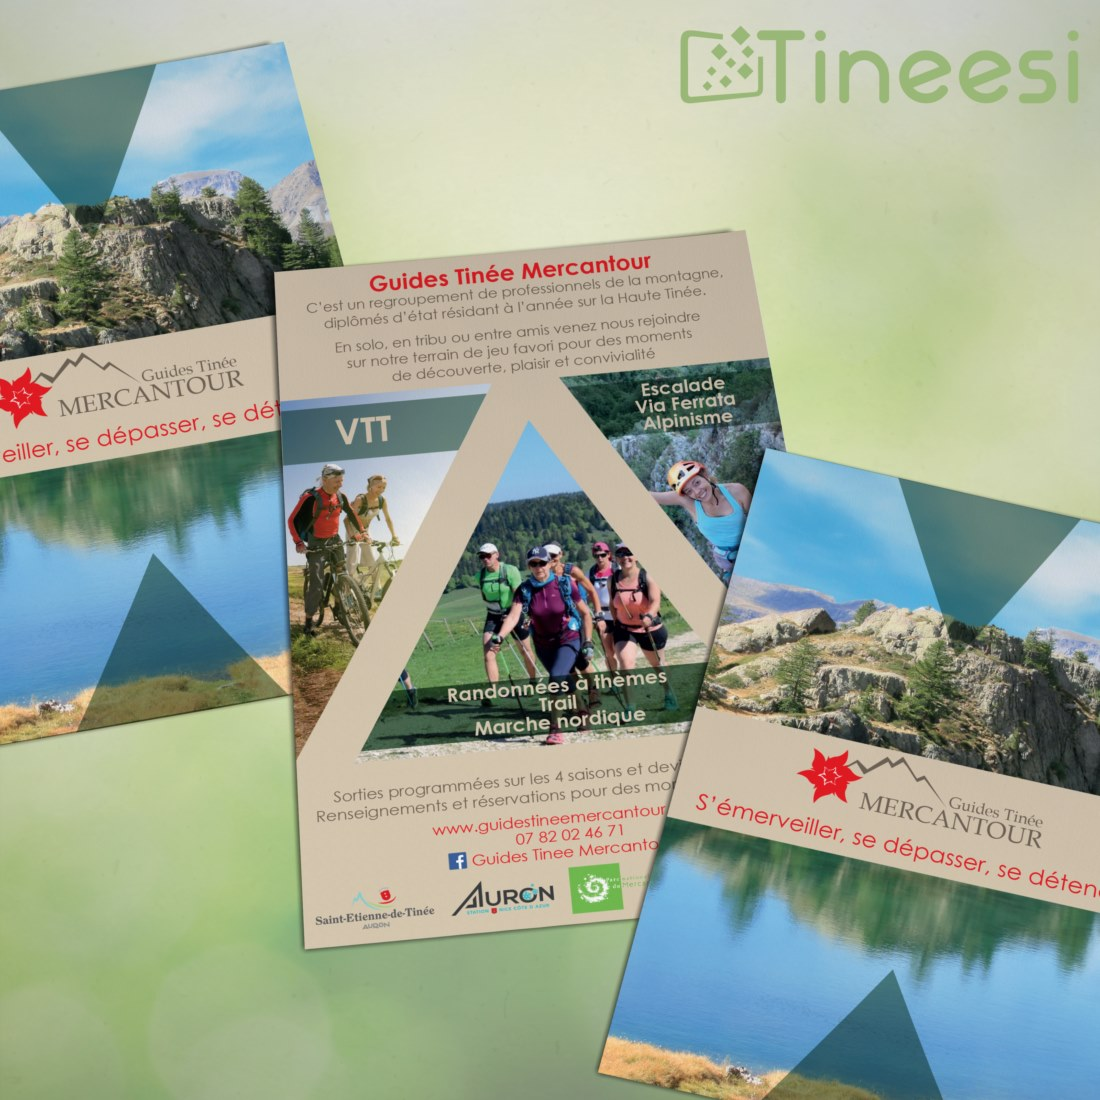 Guides Tinée Mercantour - Flyers